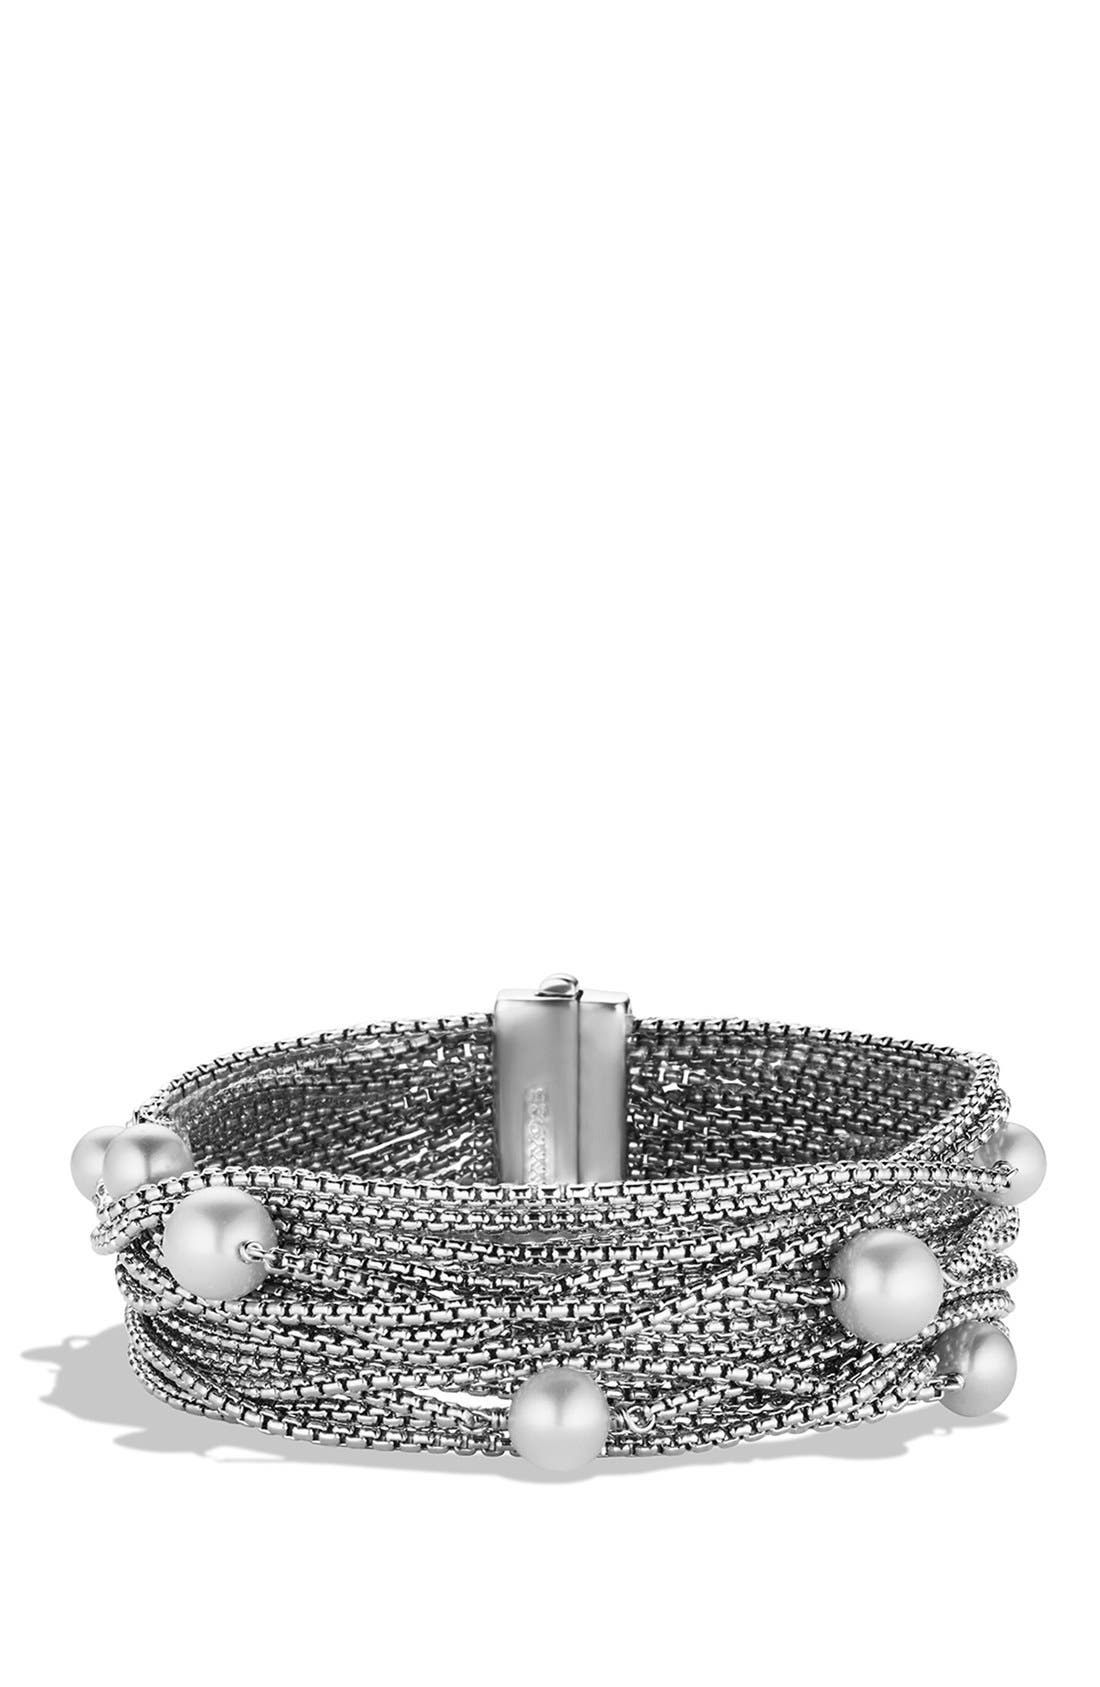 Sixteen-Row Chain Bracelet with Pearls,                         Main,                         color, Pearl